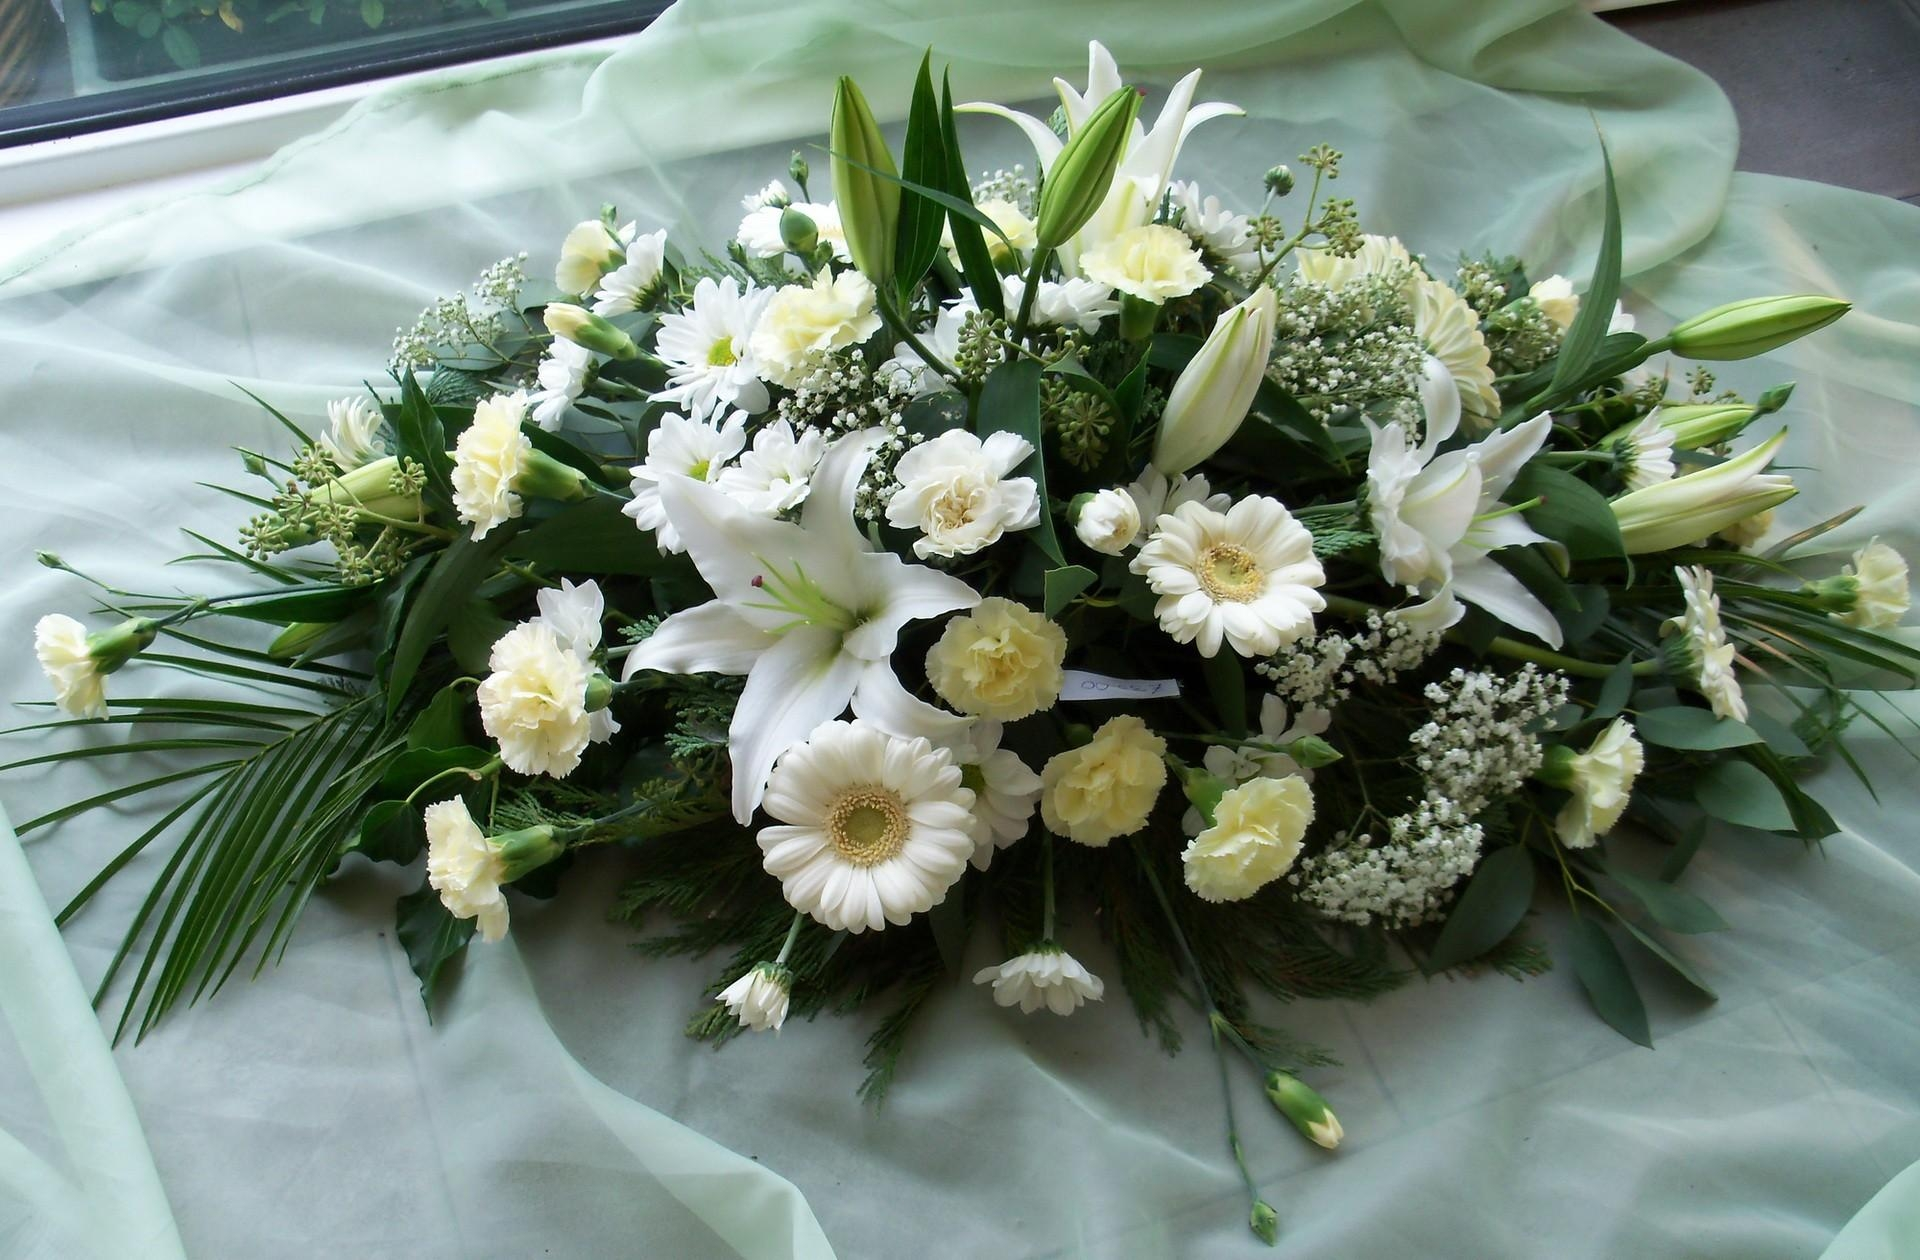 53572 download wallpaper Flowers, Carnations, Lilies, Gypsophilus, Gipsophile, Composition, Handsomely, It's Beautiful, Gerberas screensavers and pictures for free